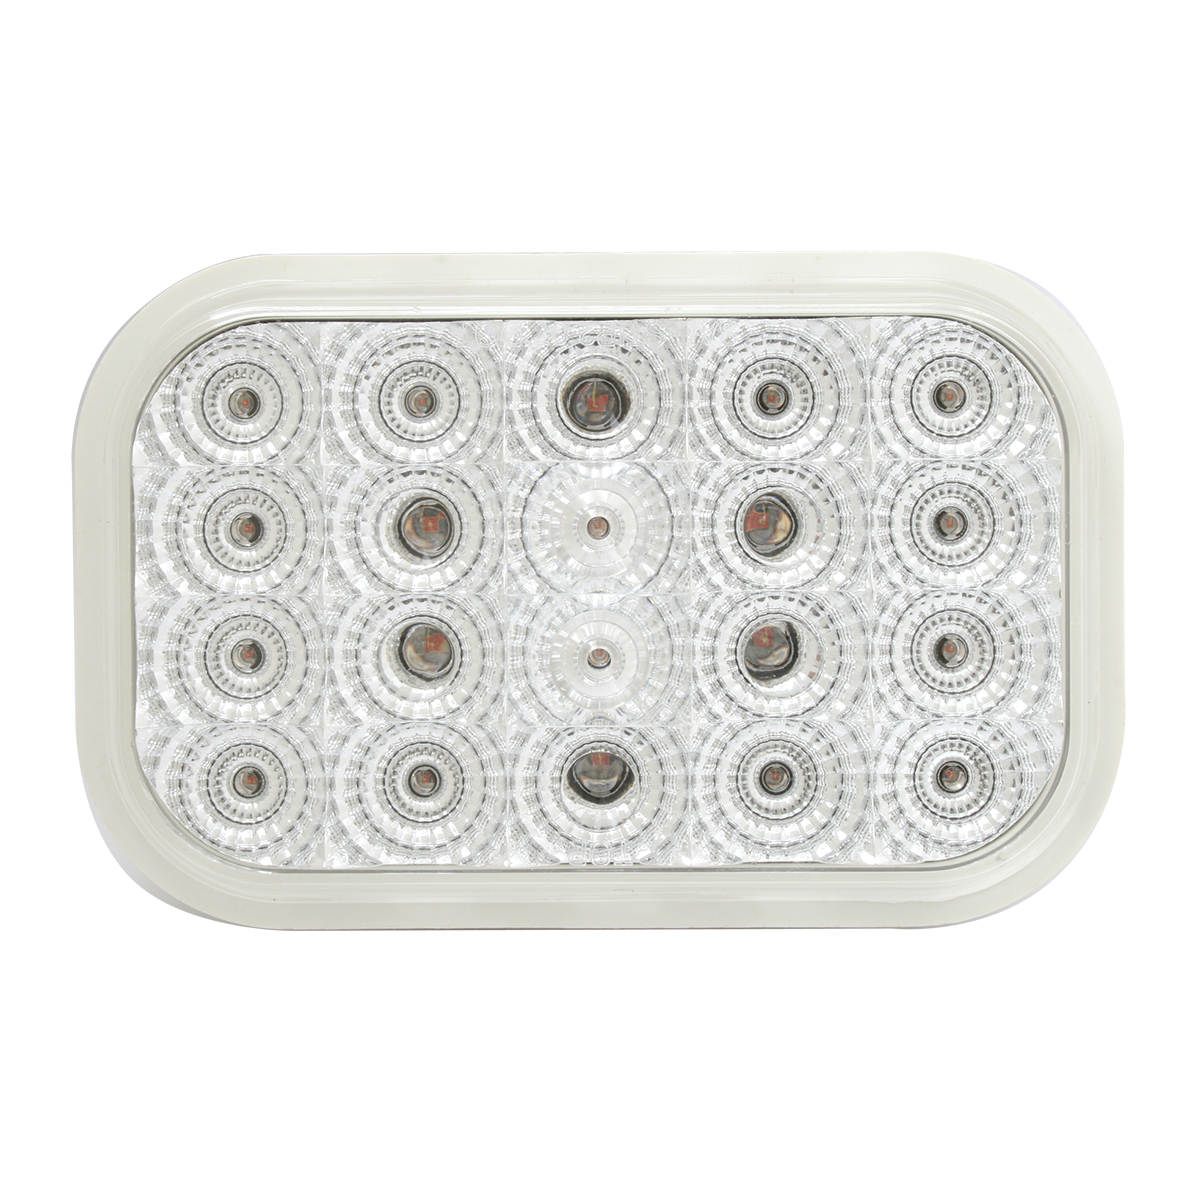 Rectangular Spyder LED Light in Clear Lens